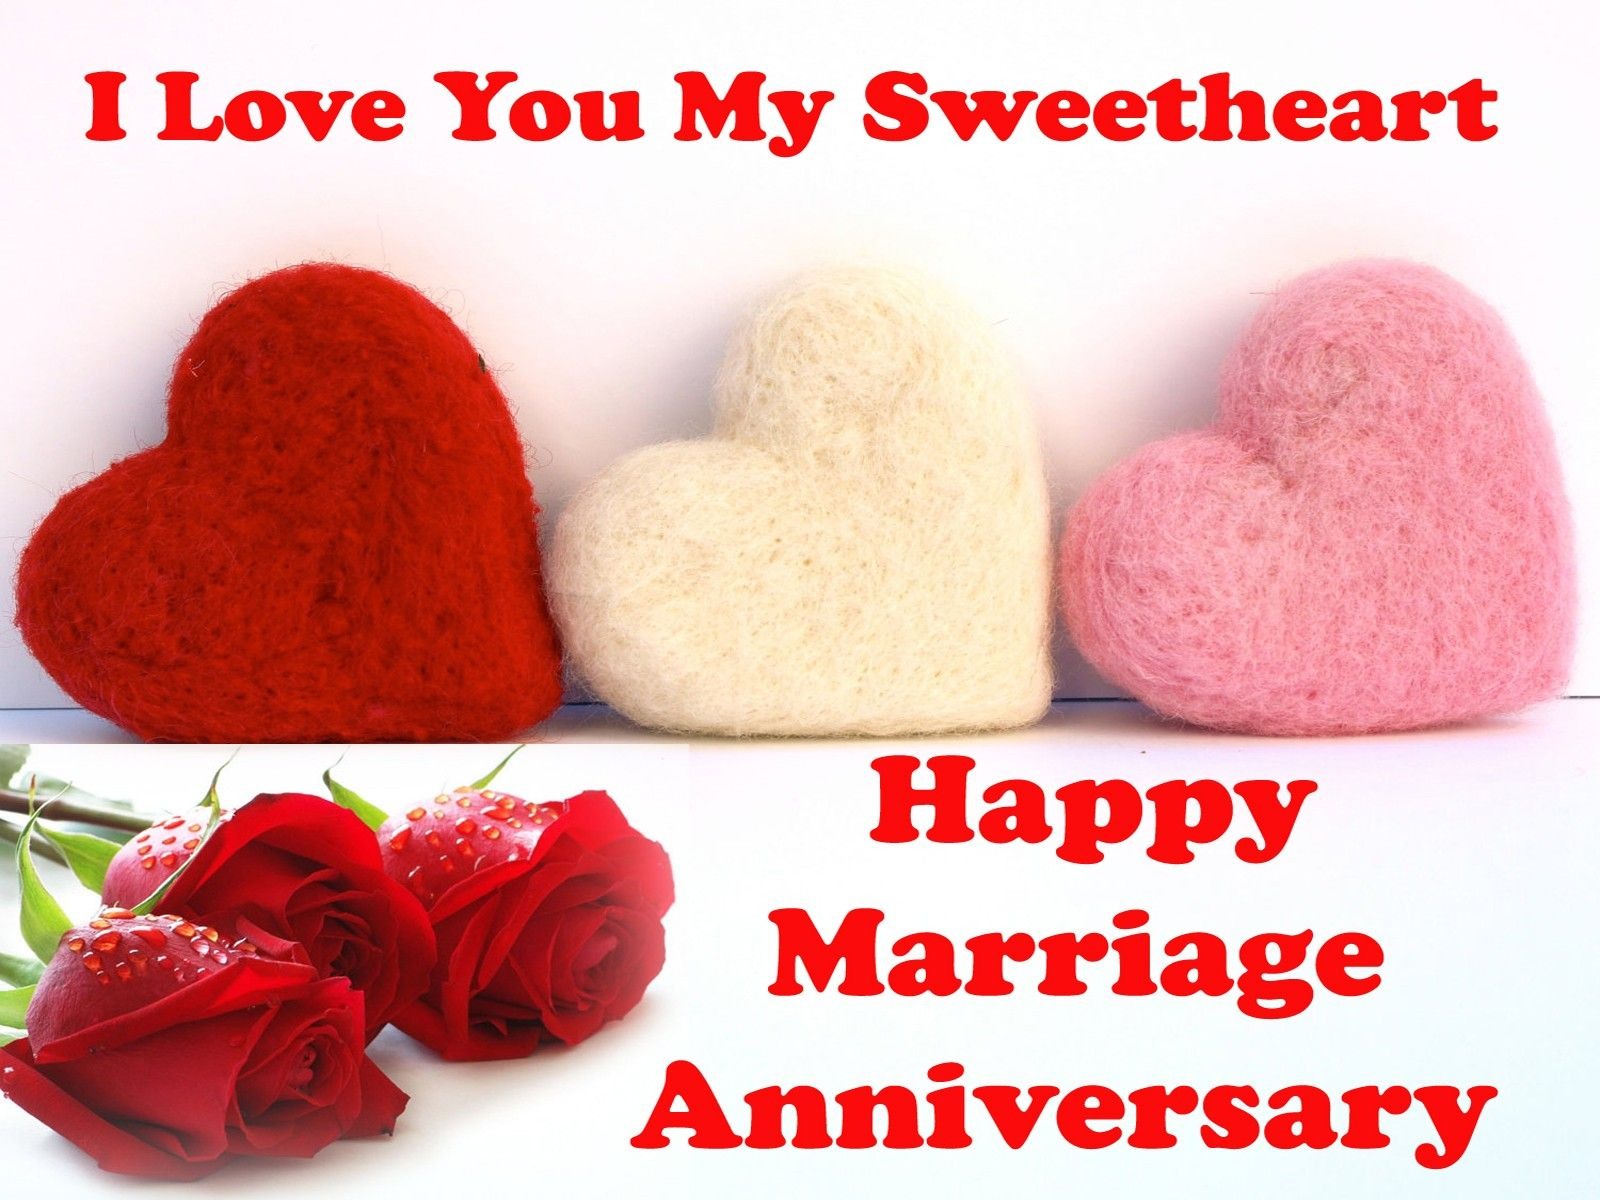 Happy Anniversary Wishes To Sweetheart Husband Marriage